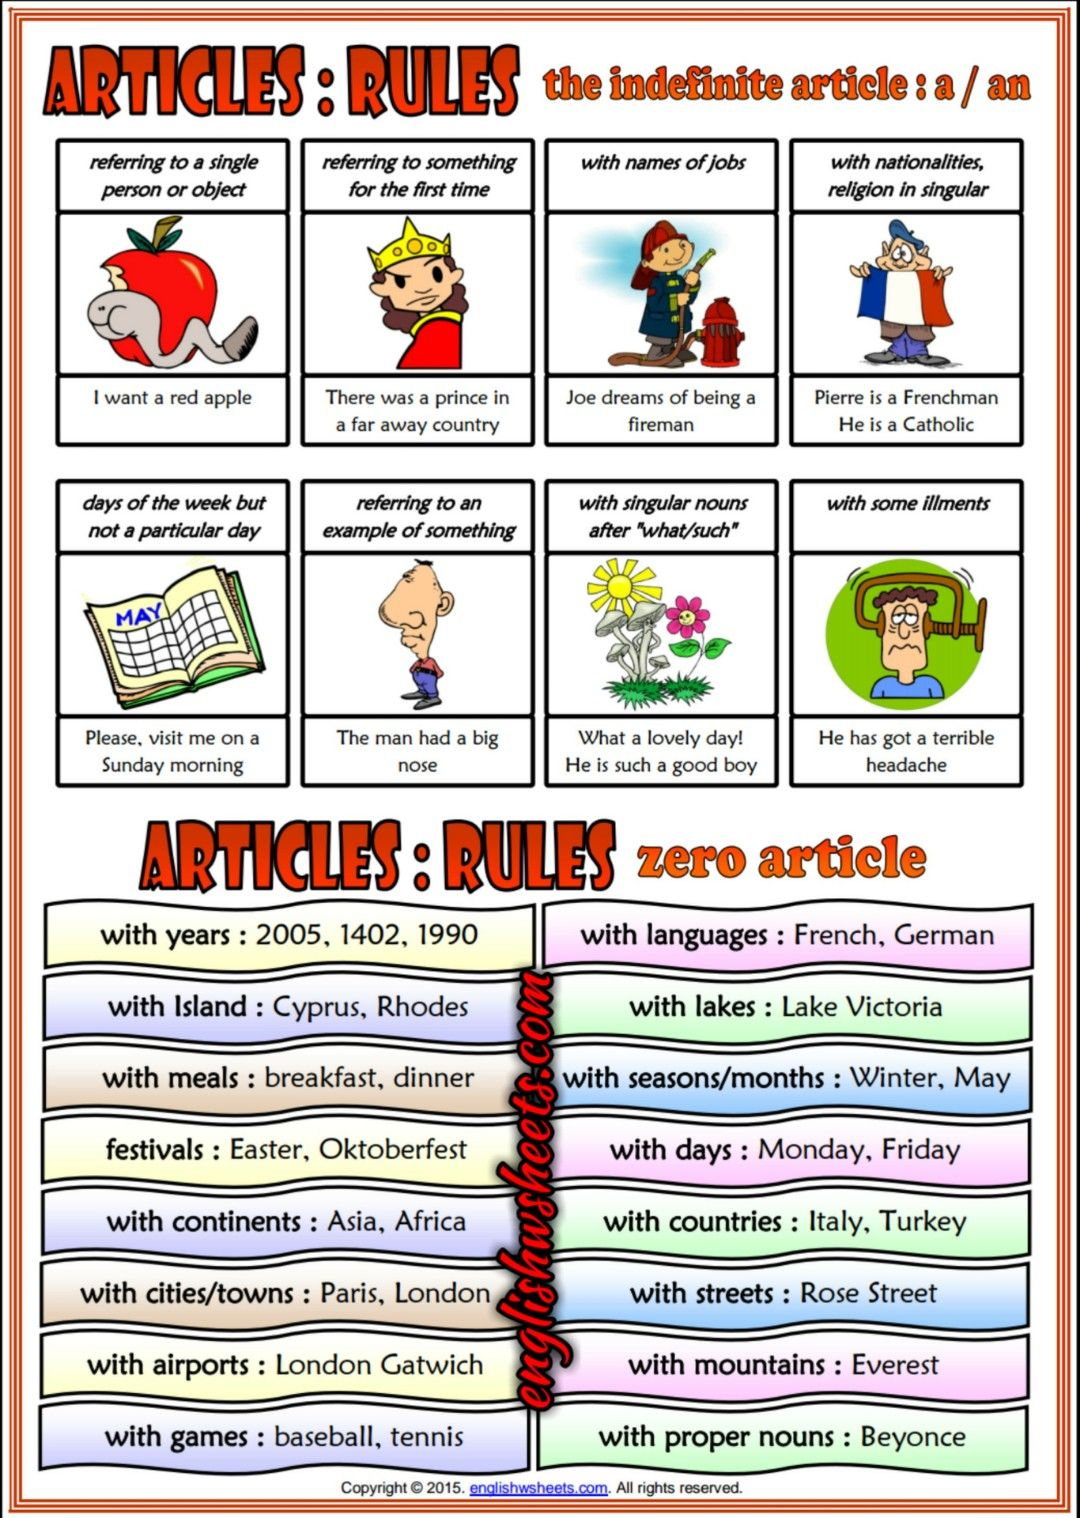 english teaching material for articles This article provides a summary of two important rules for using articles with nouns and one important exception the article is an attempt to put order into an area of english usage that is seemingly chaotic.